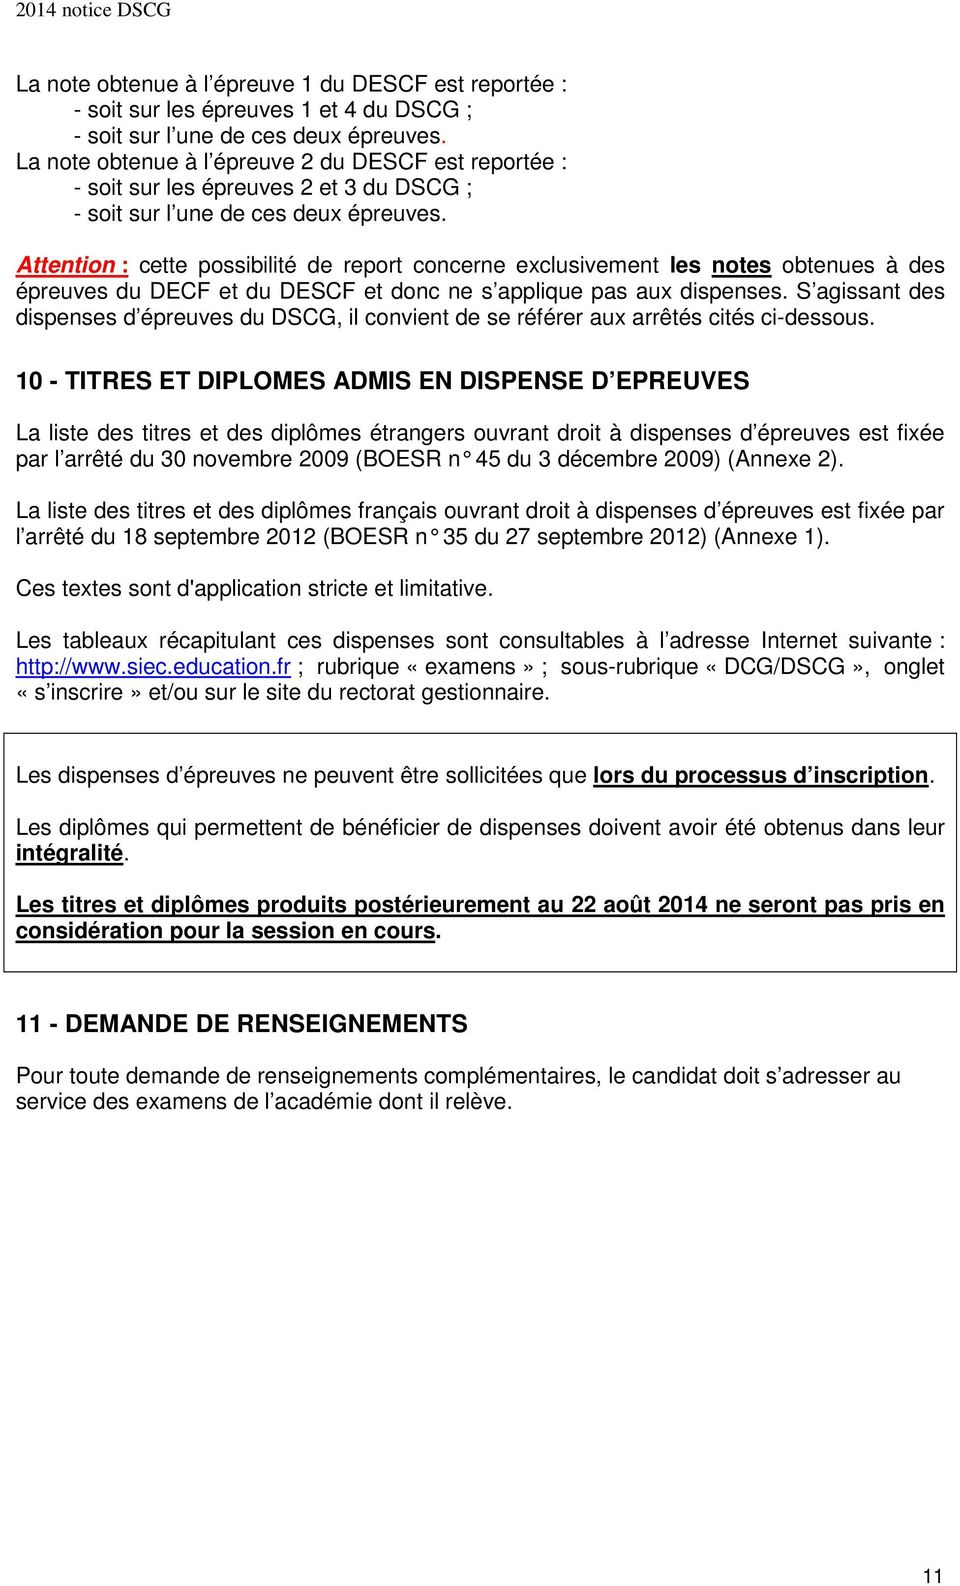 Attention : cette possibilité de report concerne exclusivement les notes obtenues à des épreuves du DECF et du DESCF et donc ne s applique pas aux dispenses.